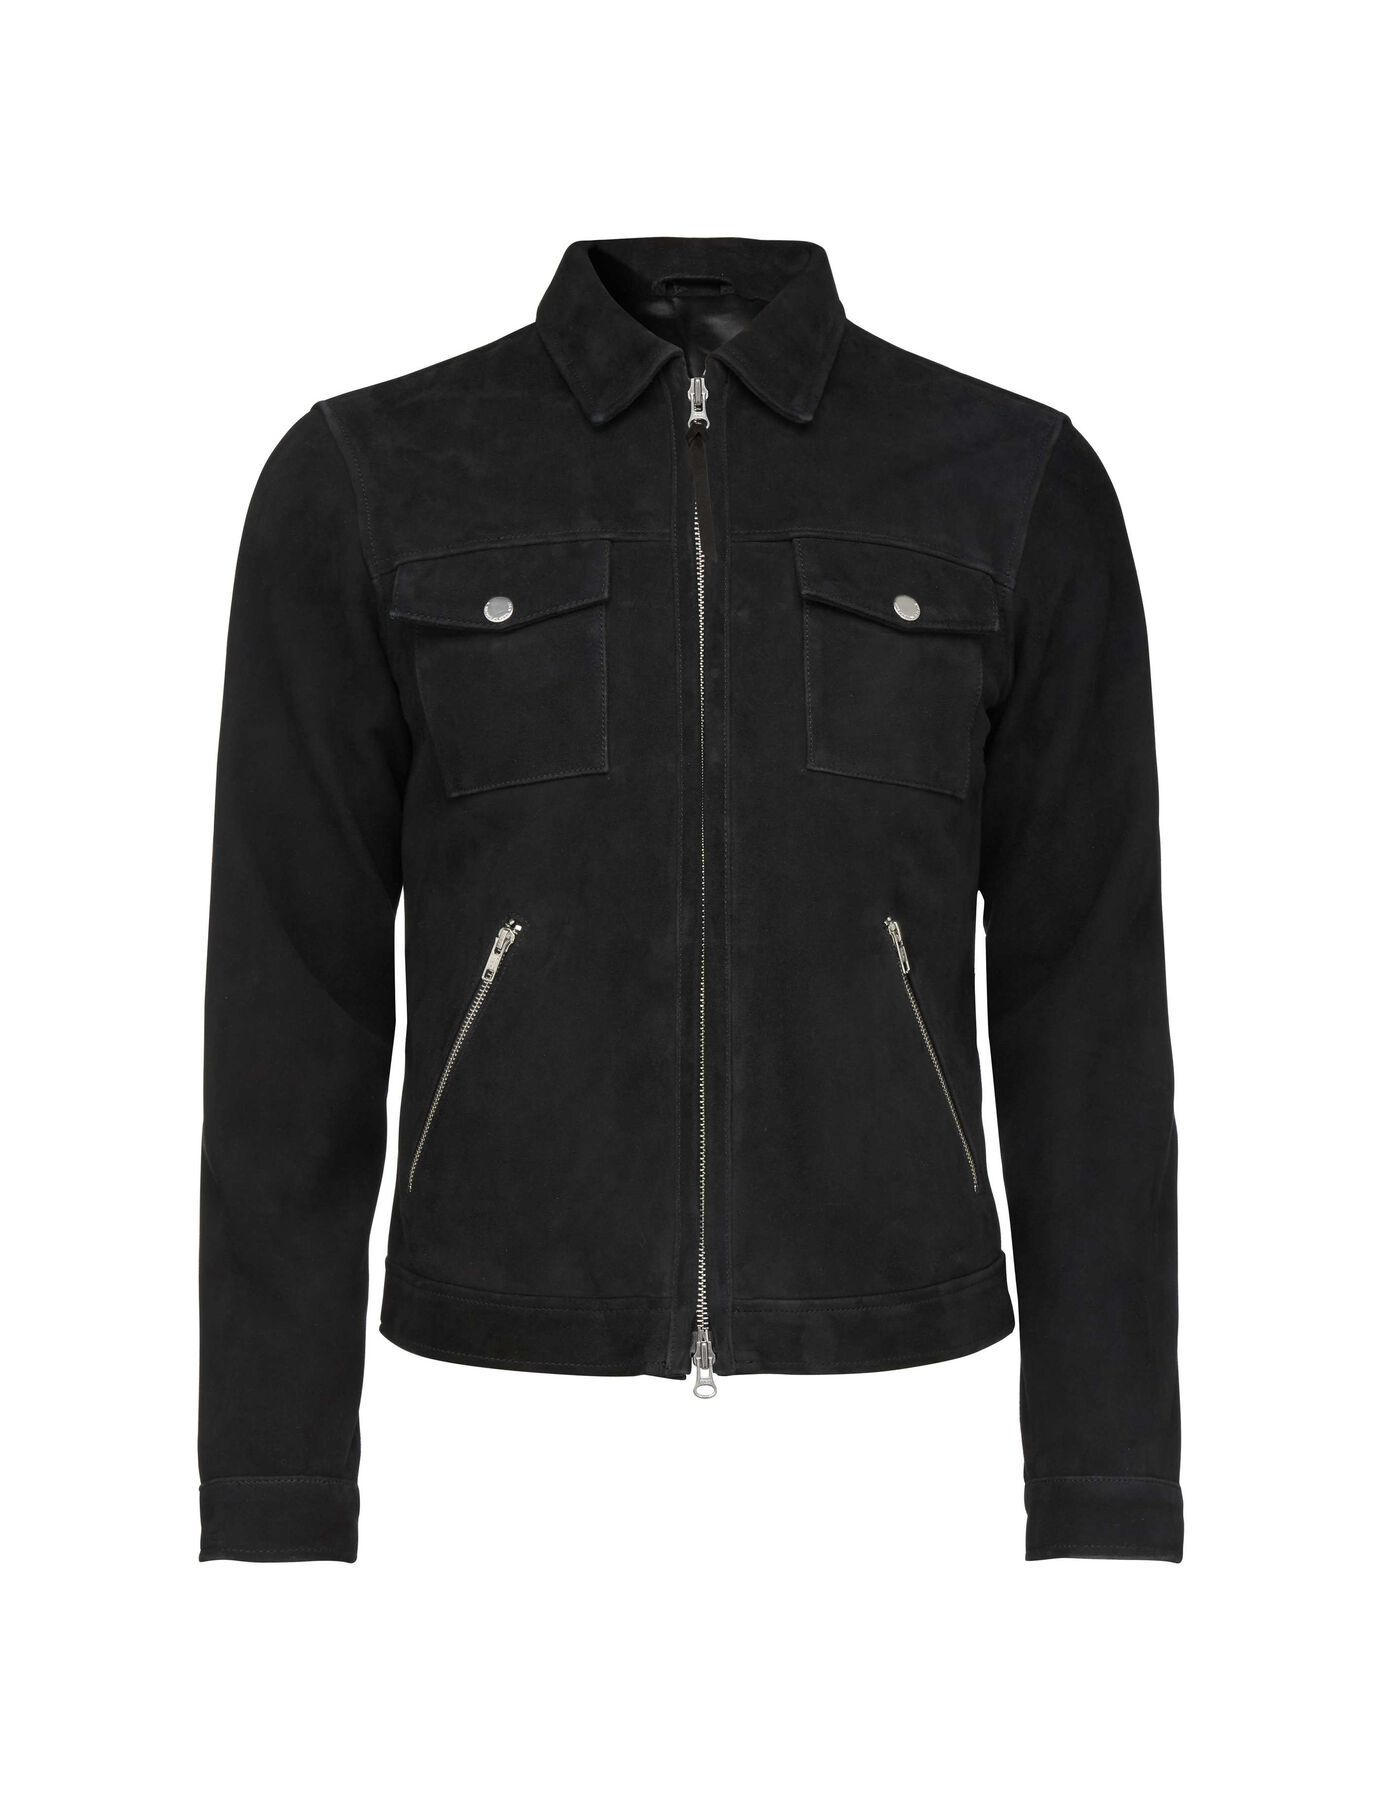 Jeppe Jacket in Black from Tiger of Sweden